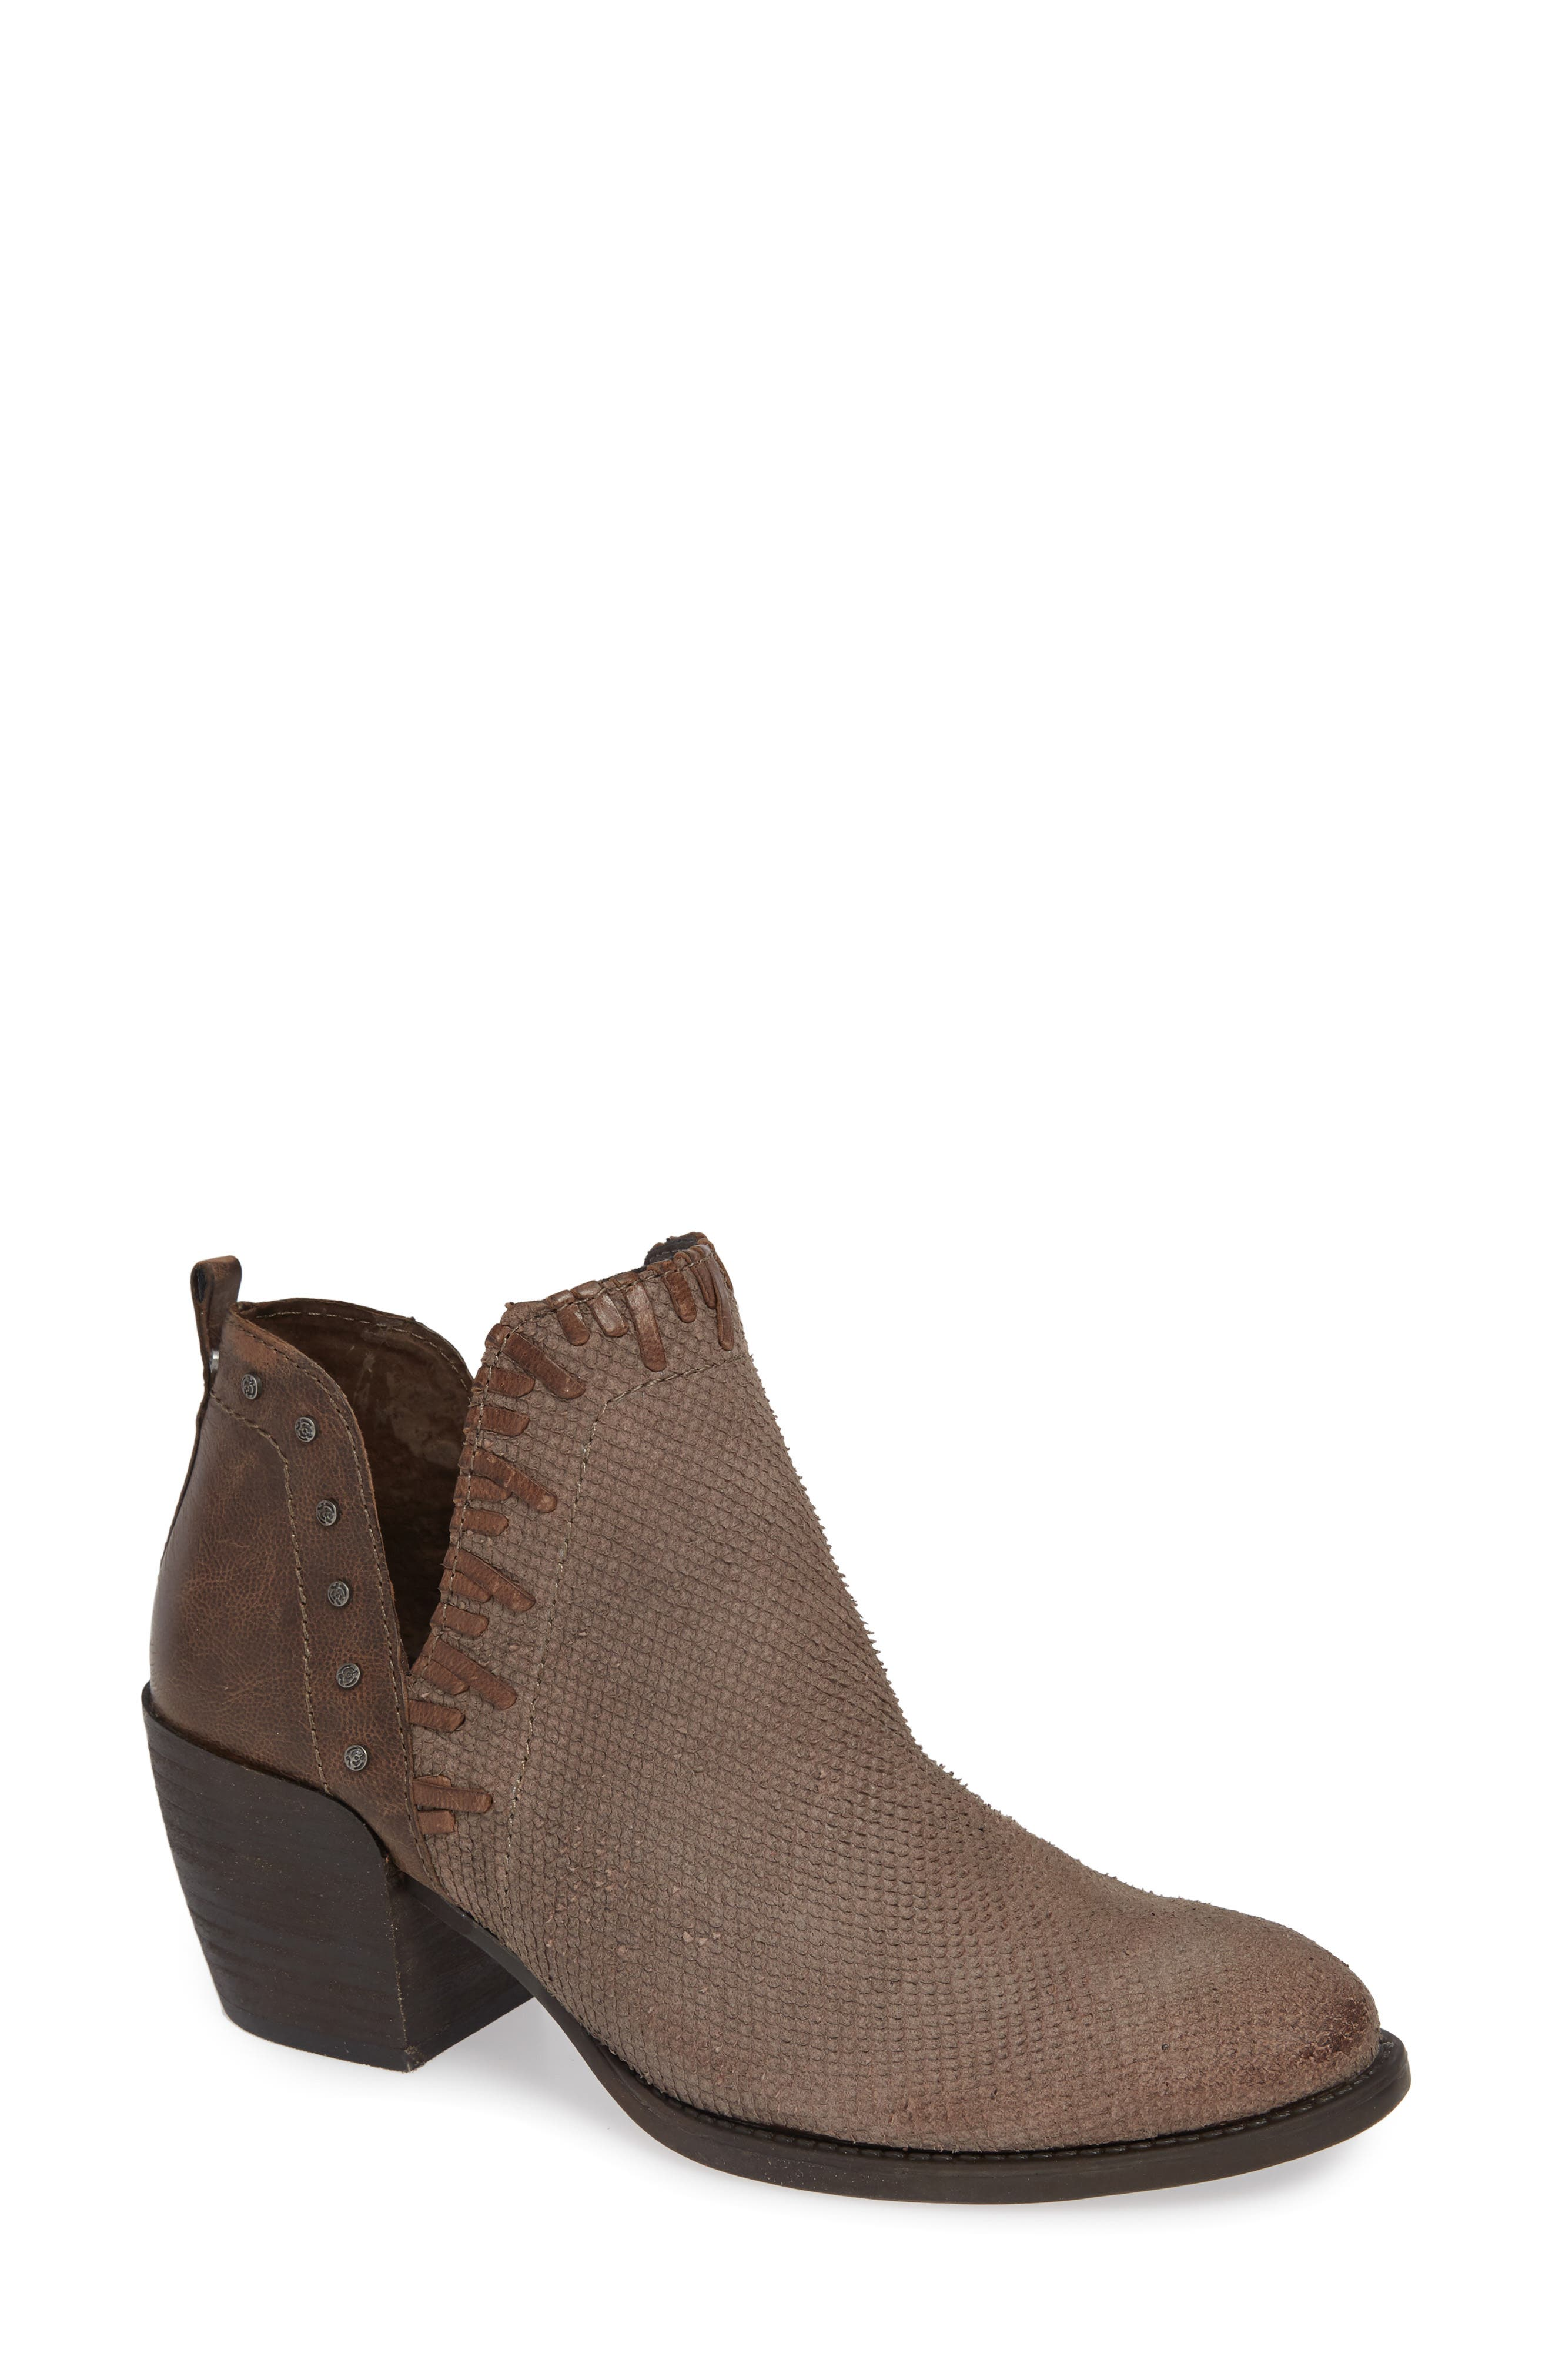 Santa Fe Ankle Bootie,                         Main,                         color, CINDER LEATHER